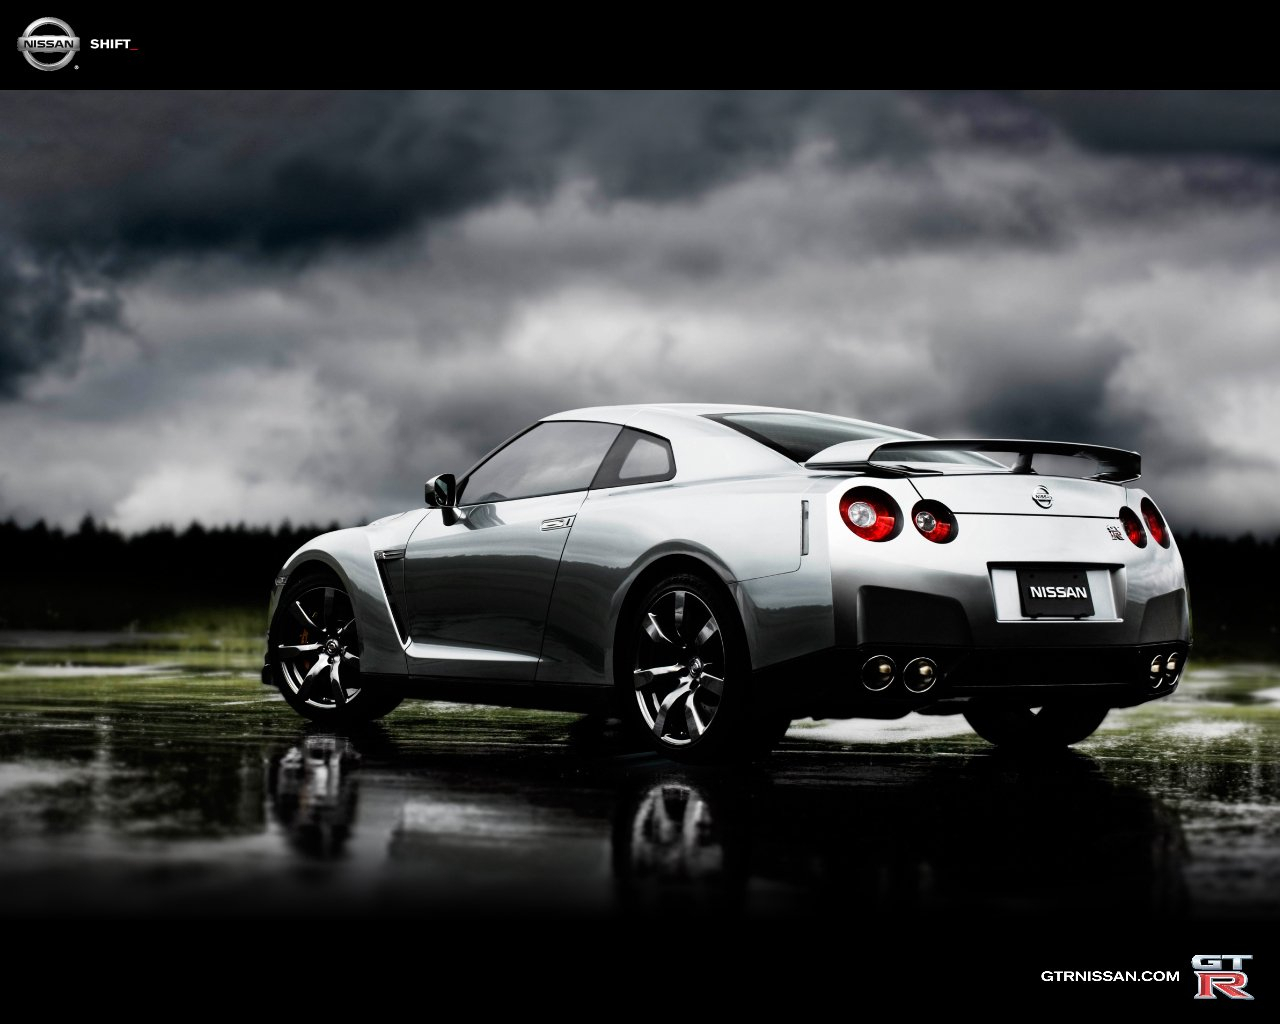 195 nissan gt-r hd wallpapers | background images - wallpaper abyss